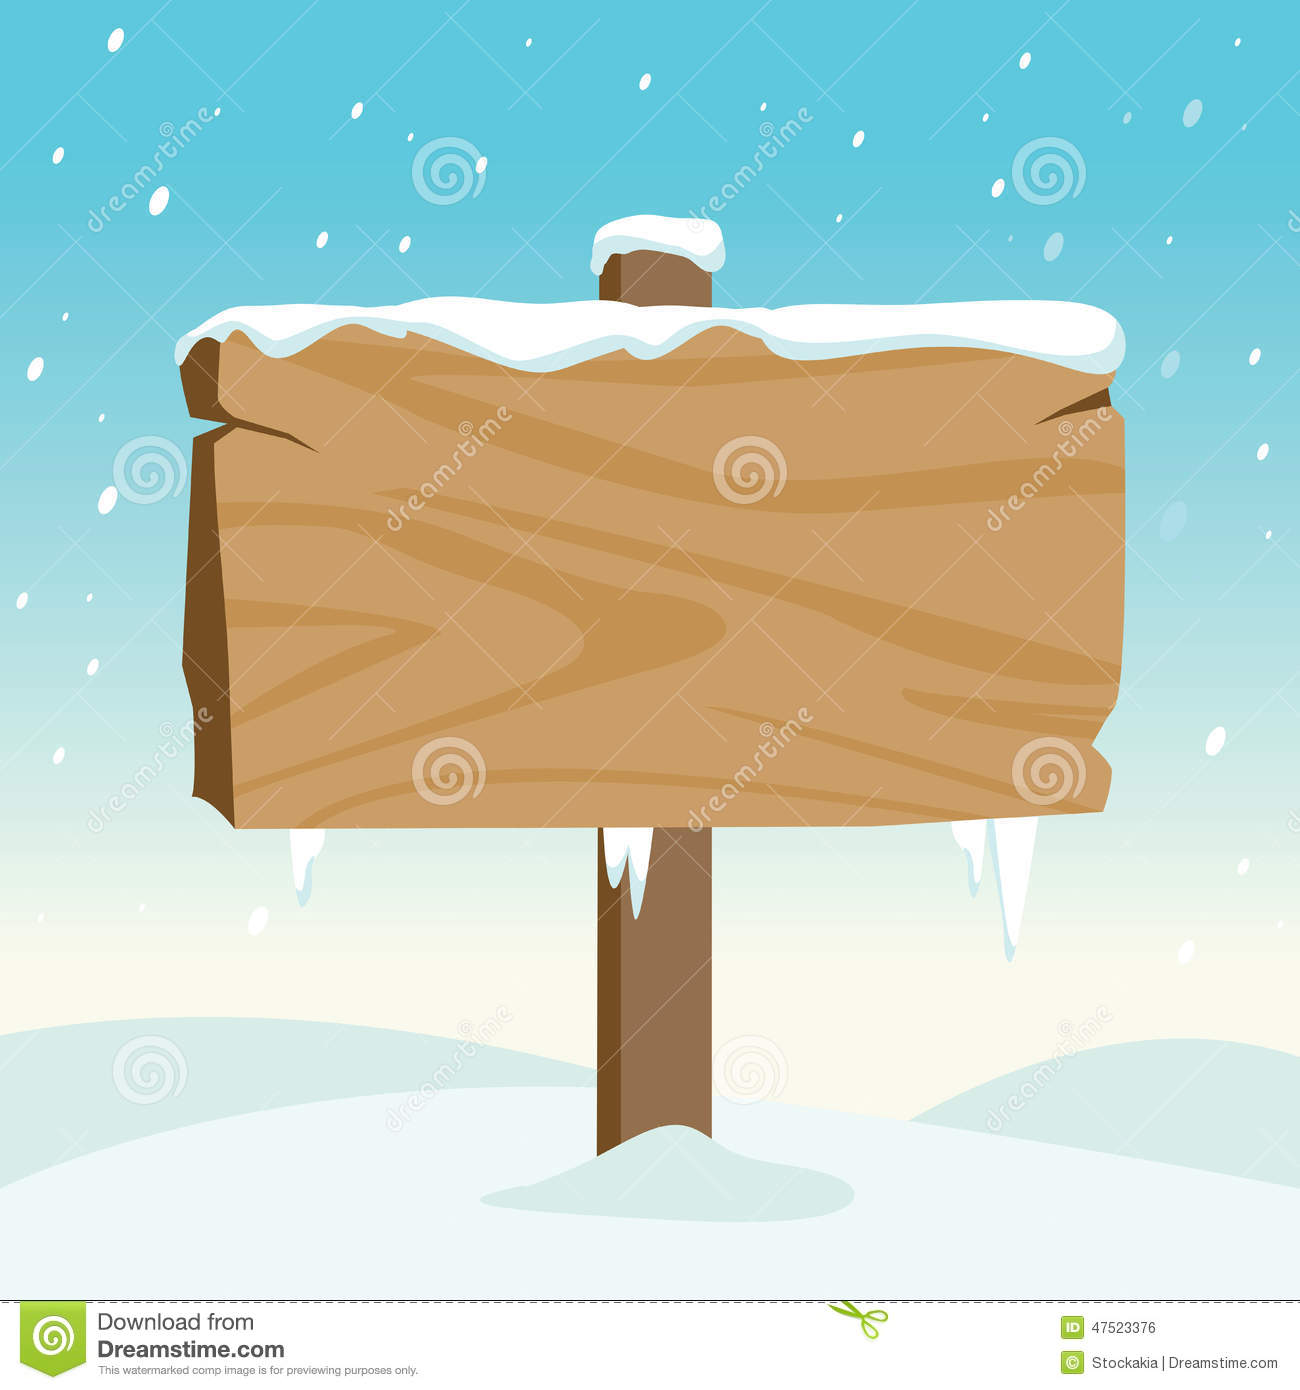 blank-wooden-sign-snow-vector-illustration-signpost-snowy-landscape-47523376.jpg